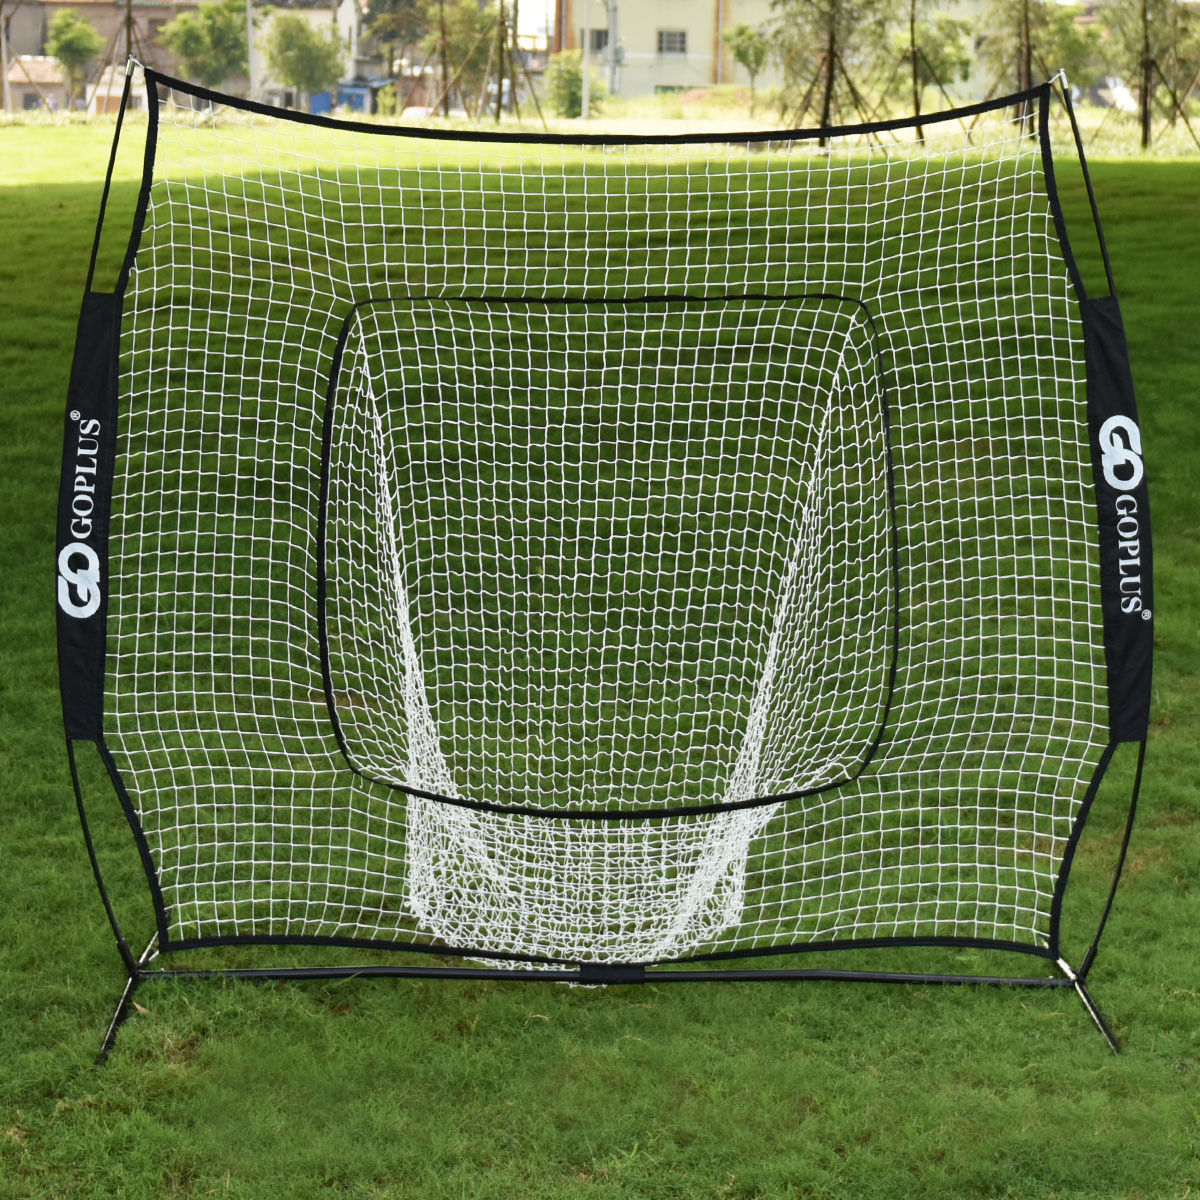 Costway 7x7' Baseball & Softball Practice Hitting/Batting Training Net with Bow Frame, Black Bag